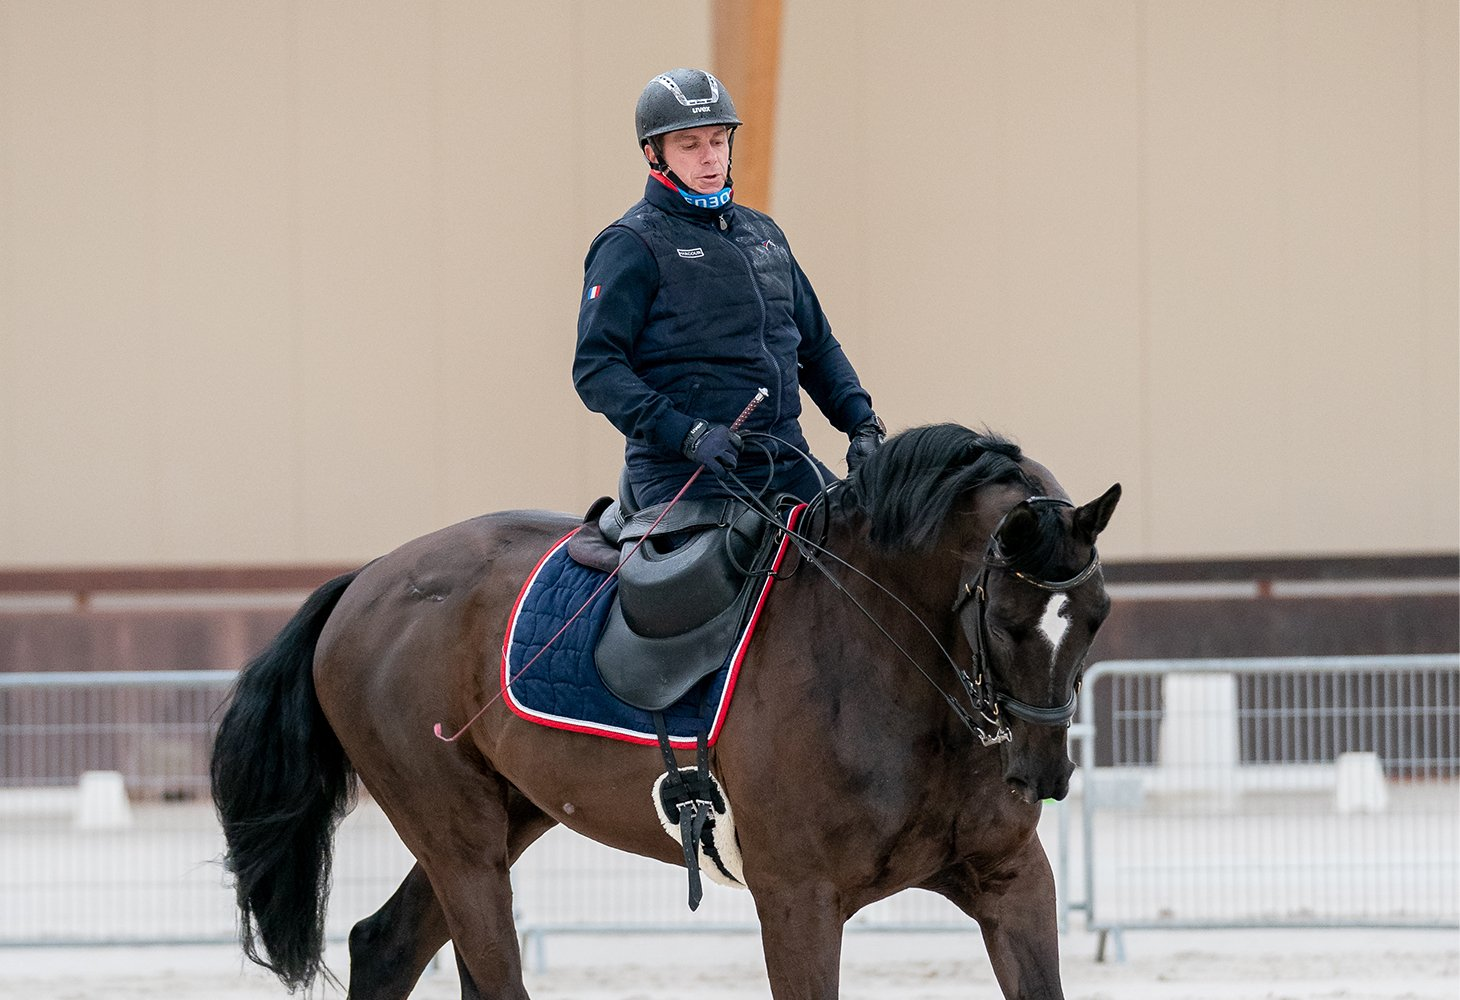 The French Paralympic Riding Team in training at the Pôle international du Cheval Longines - Deauville